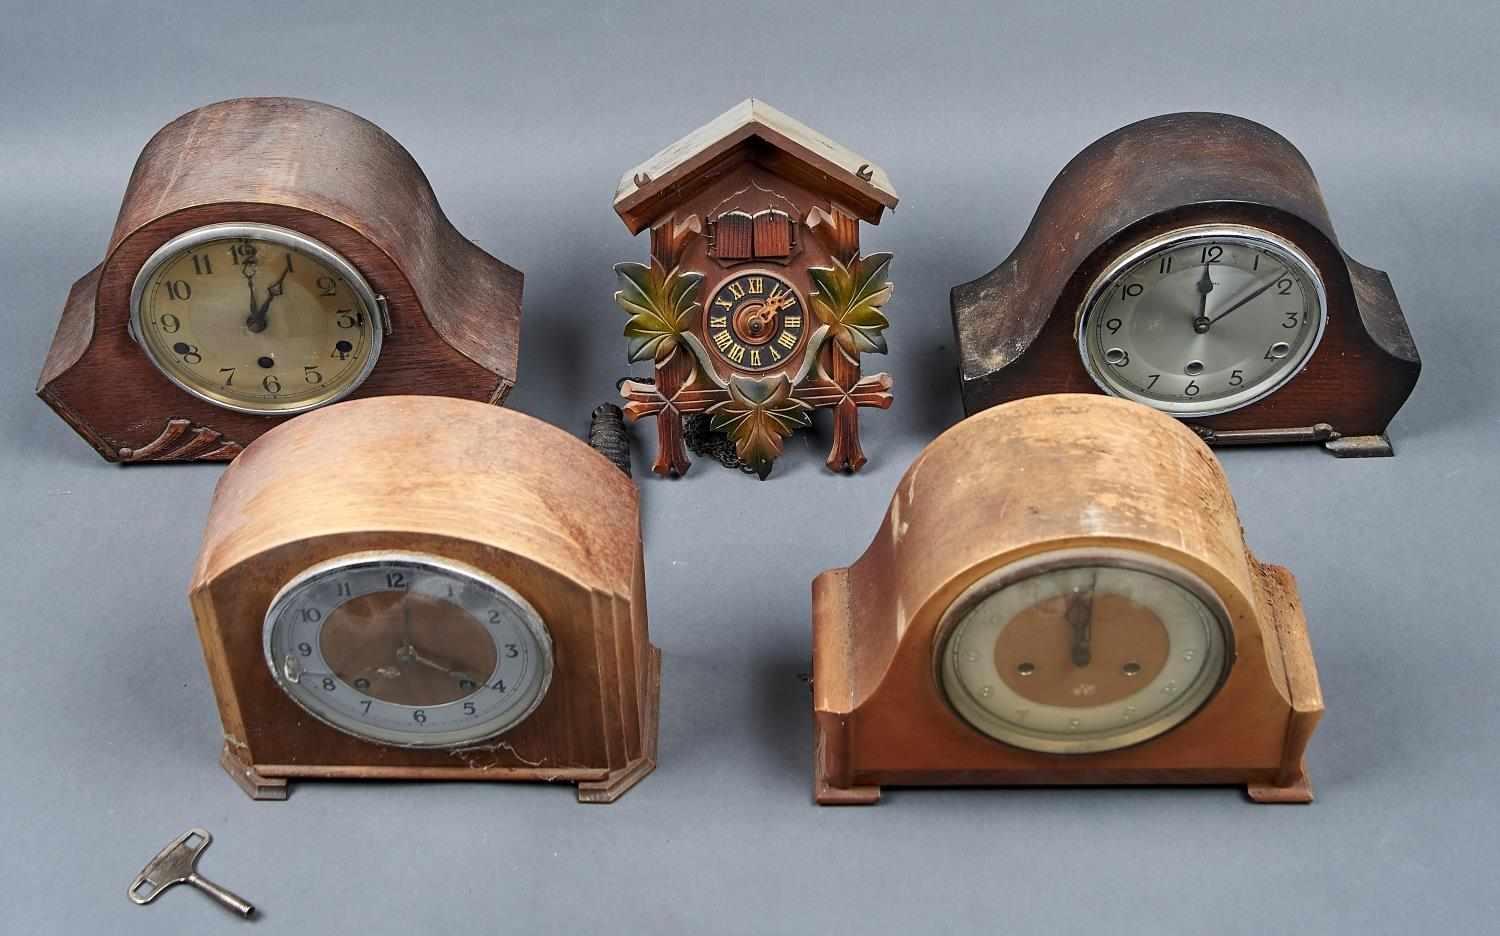 FOUR MANTEL CLOCKS, ALL C1950, THREE WITH OAK VENEERED CASES, THE OTHER MAHOGANY, ALL WITH